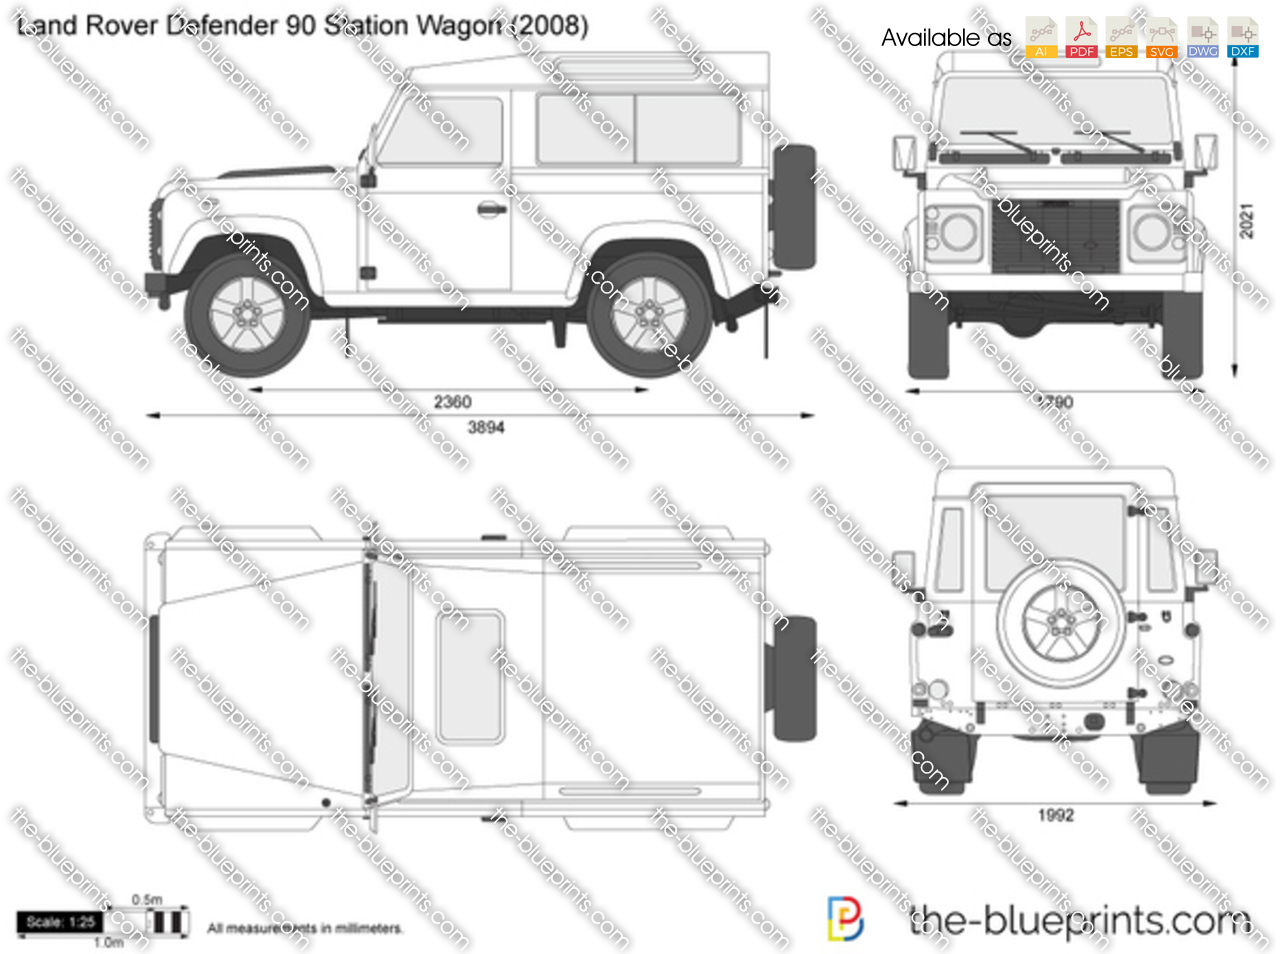 1998 Land Rover Defender 90 Station Wagon